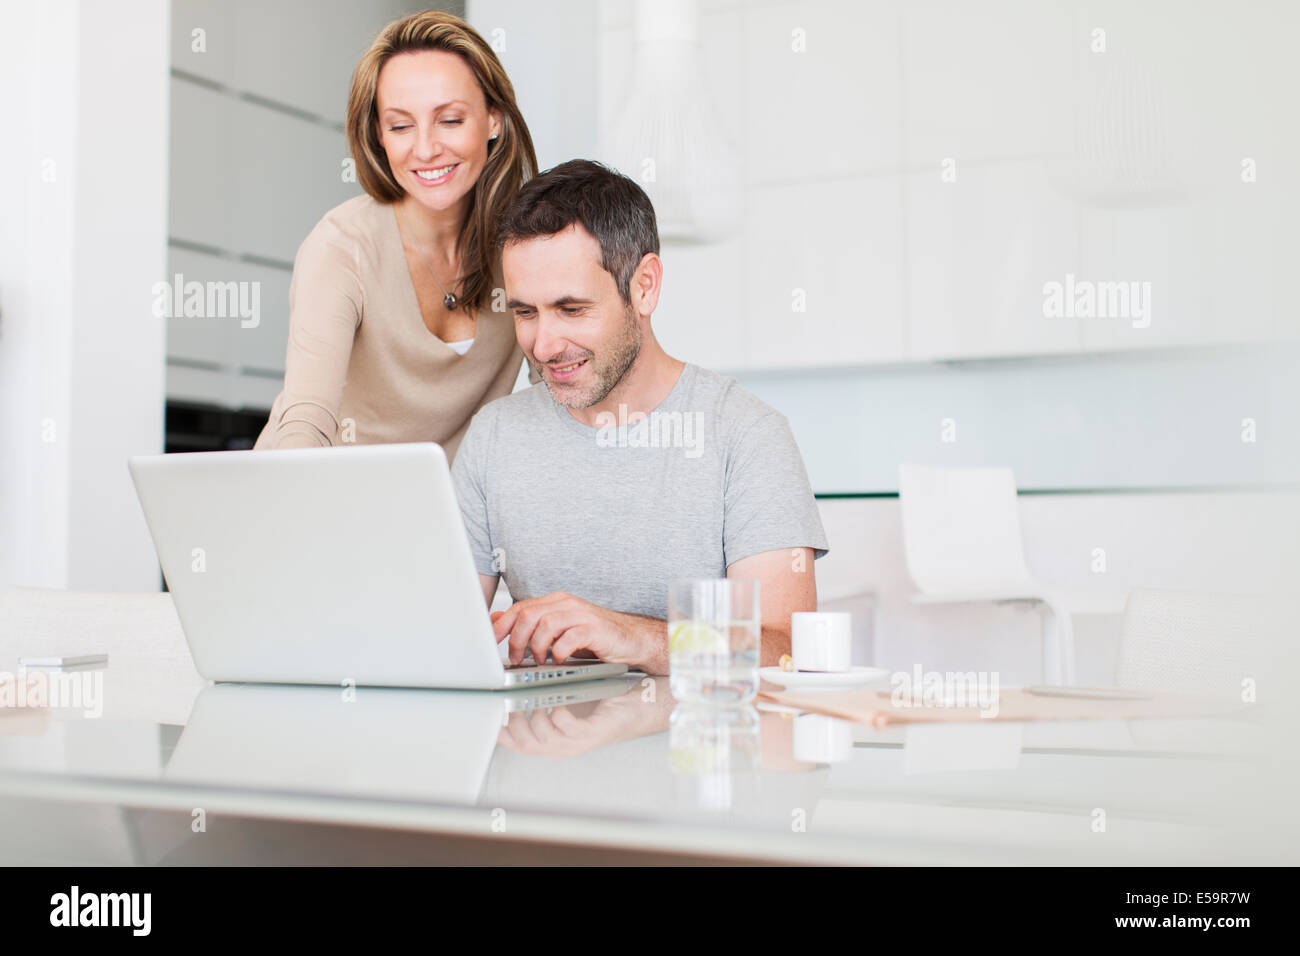 Couple using laptop at breakfast table - Stock Image